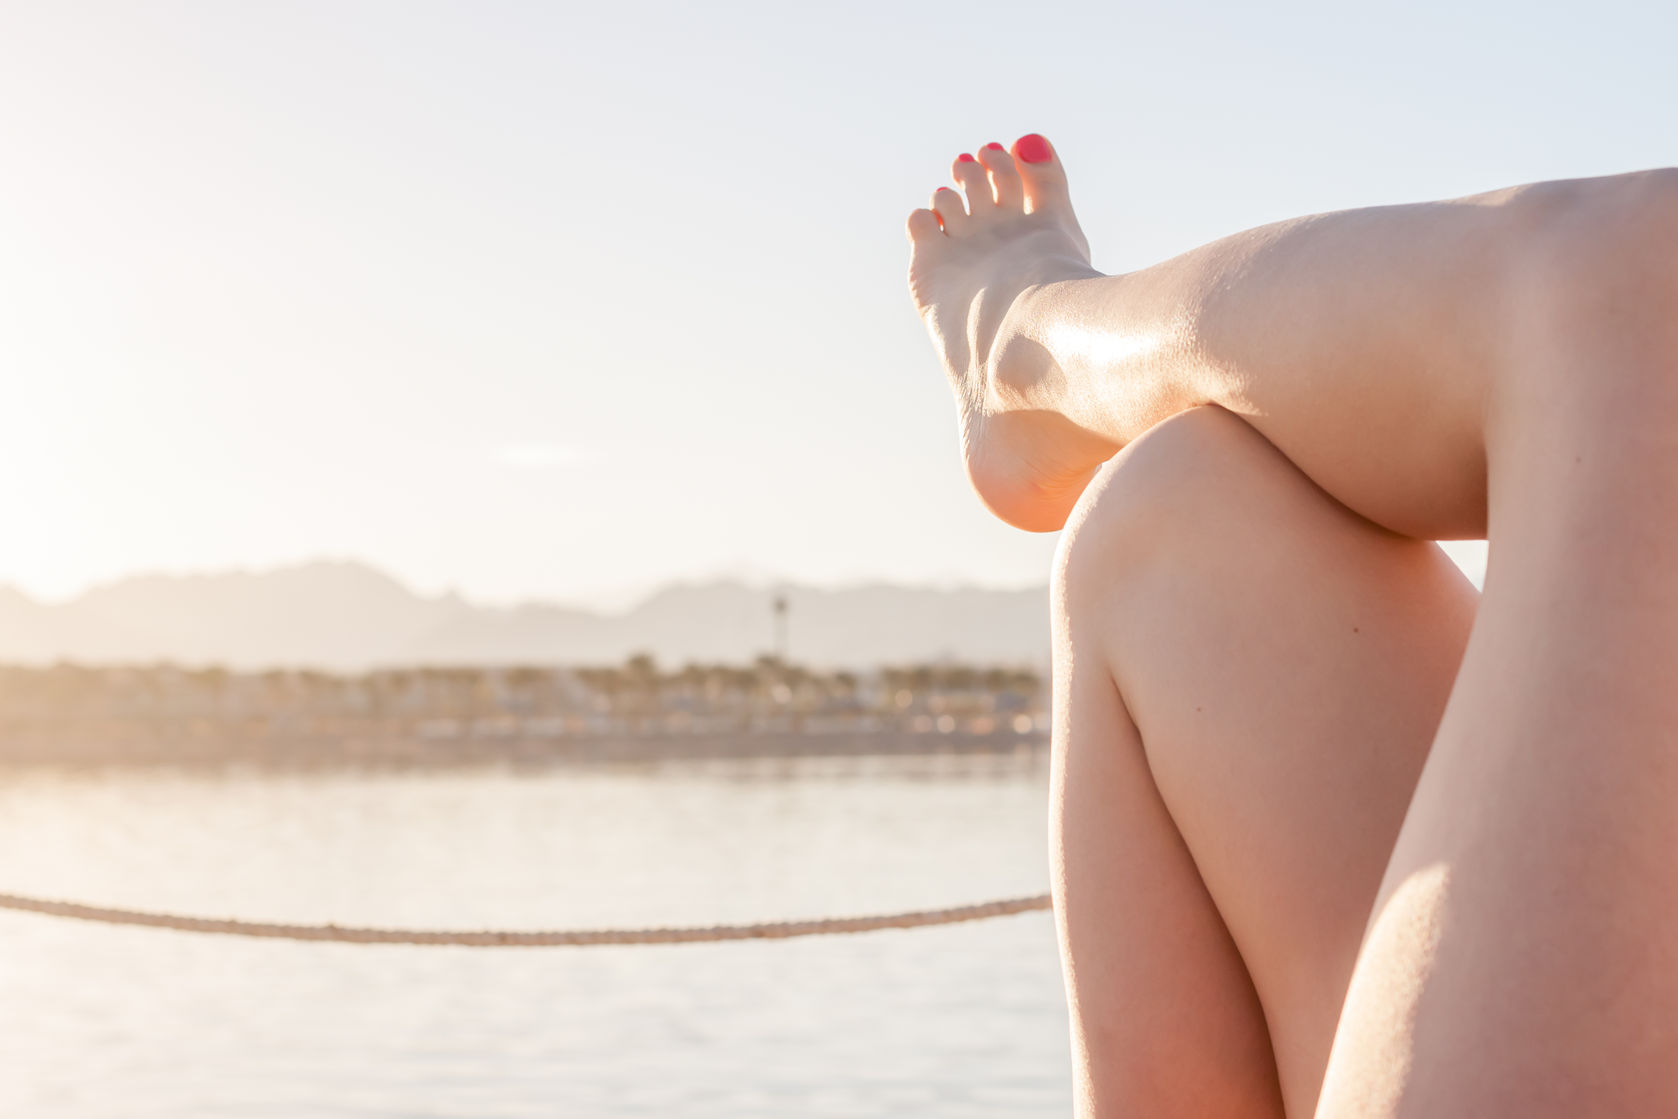 Laser Hair Removal: A Brief History